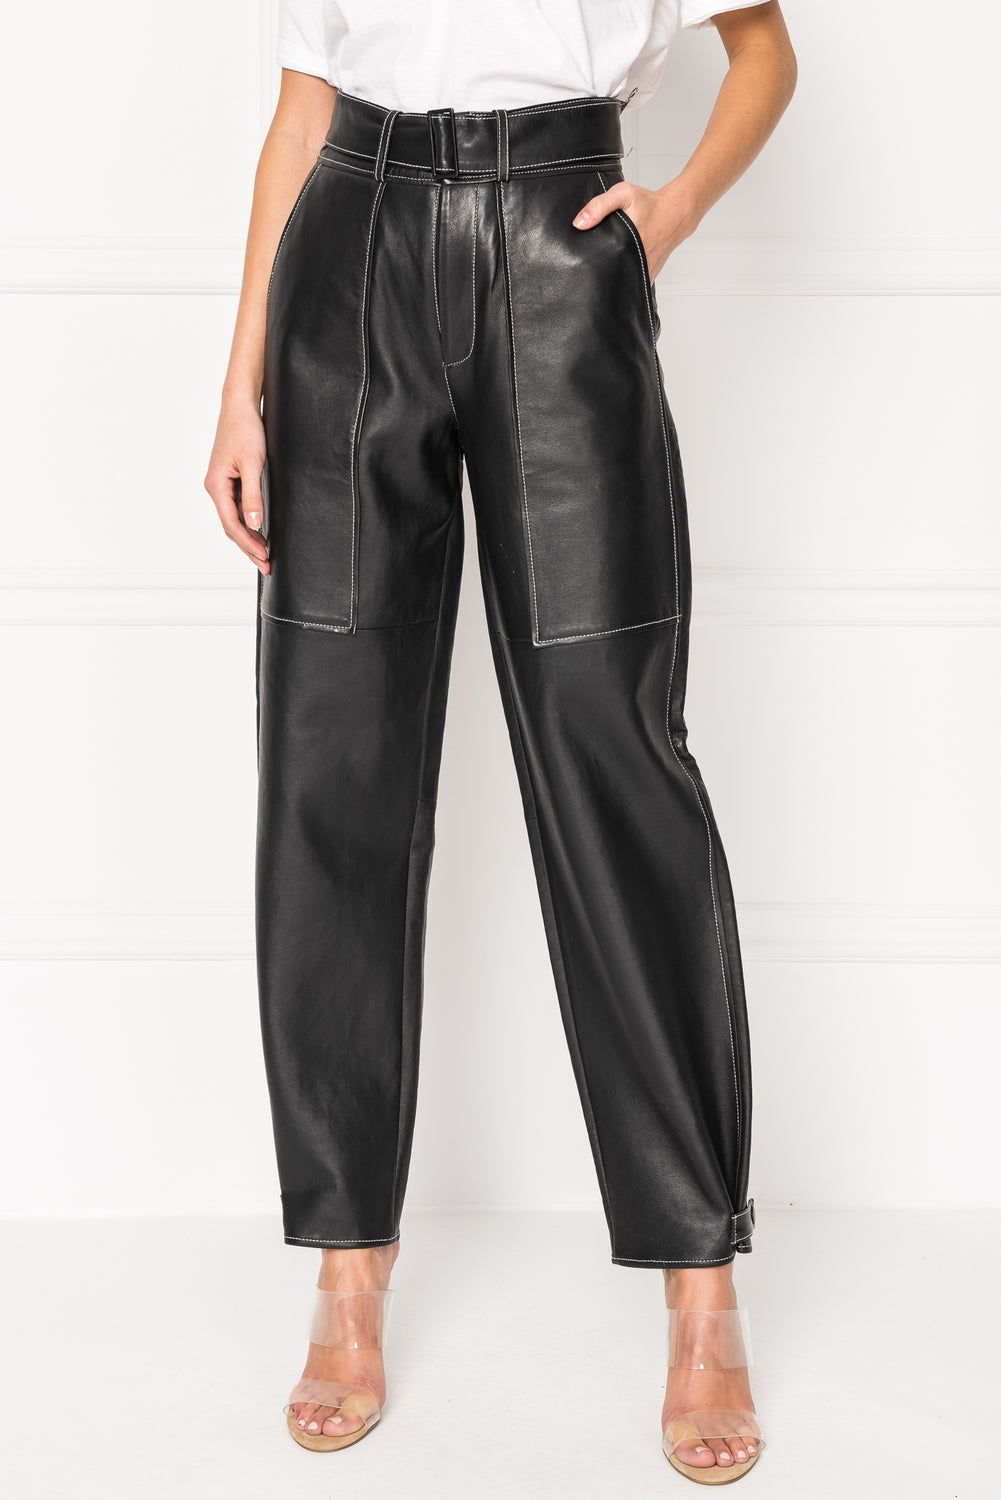 GARBI High Waisted Leather Carpenter Pant